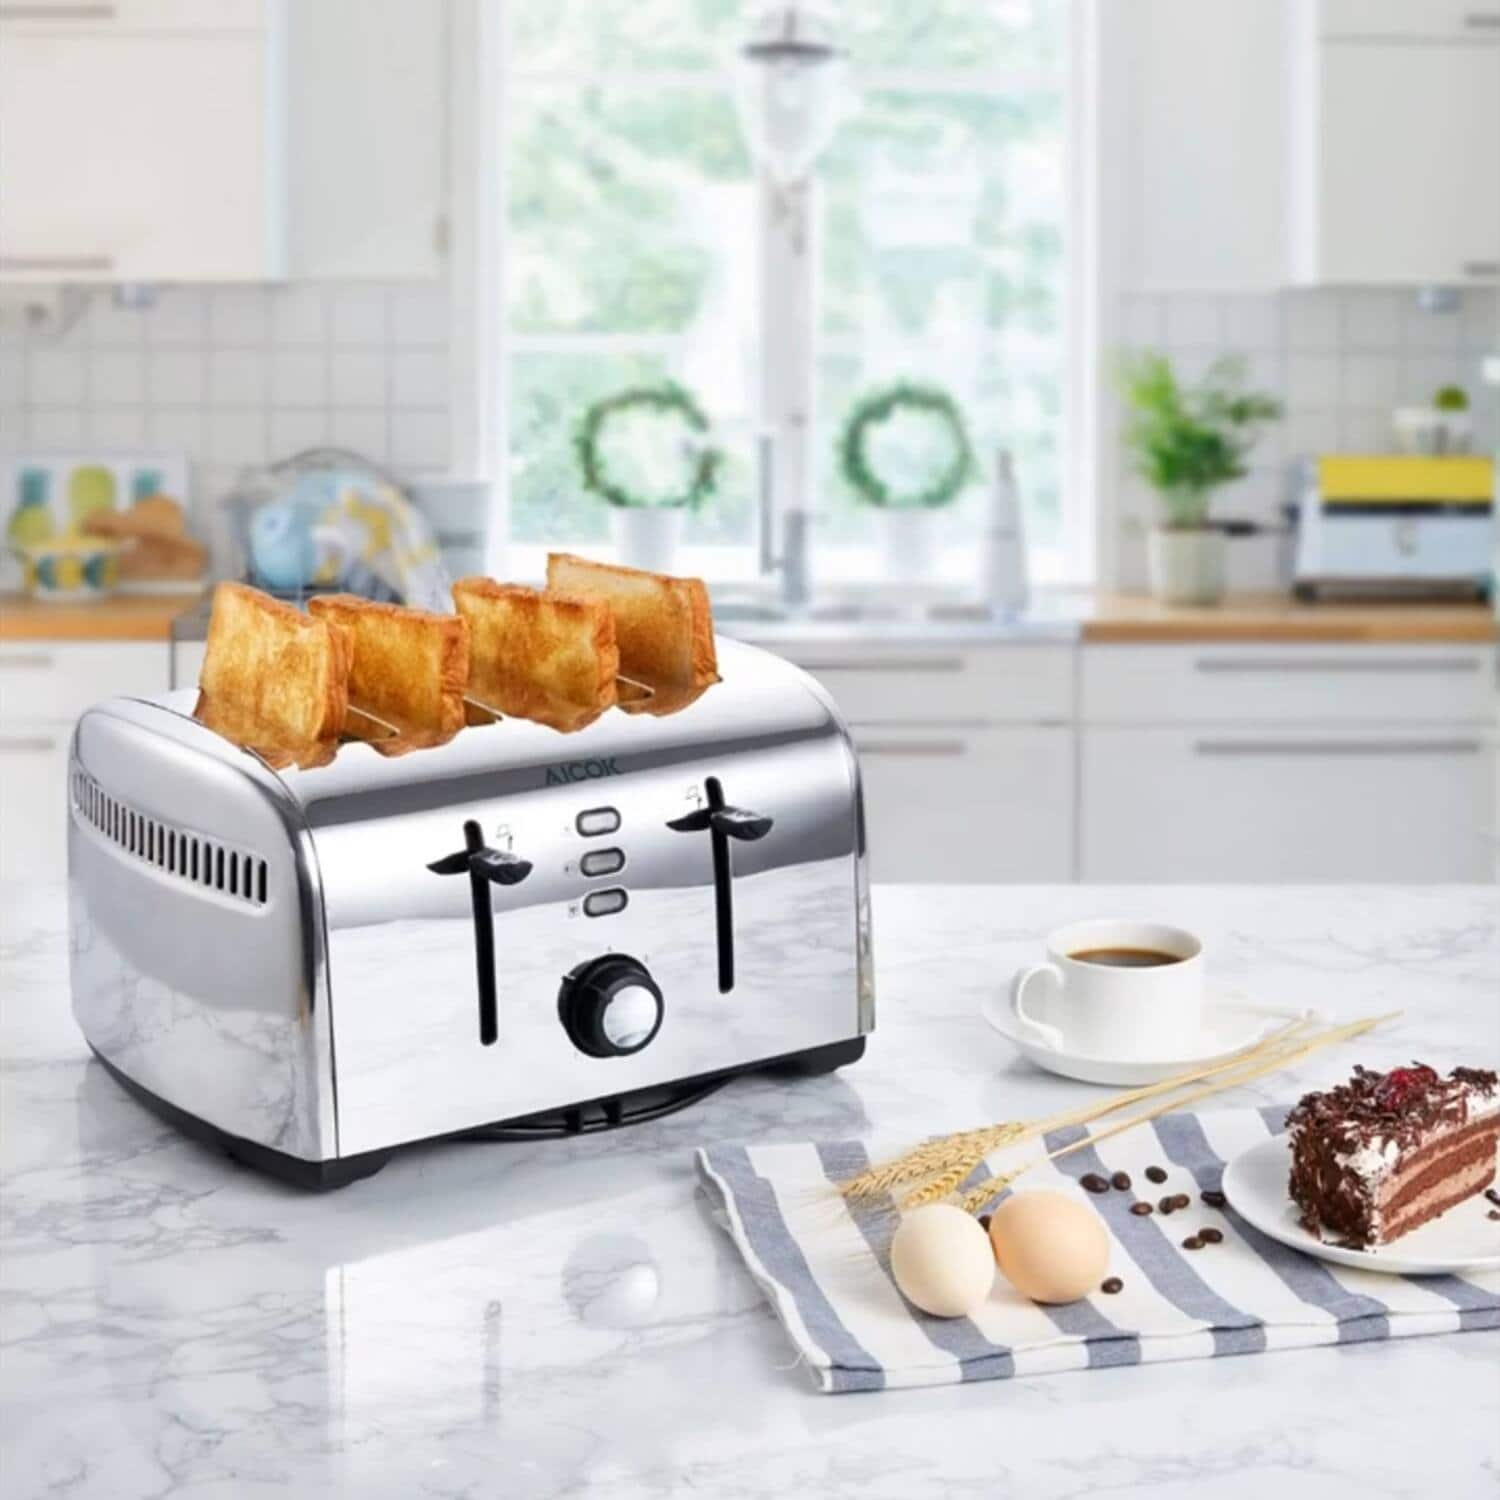 AICOK 4 Slice Stainless Steel Toaster with Wide Slots $17.98 Shipped